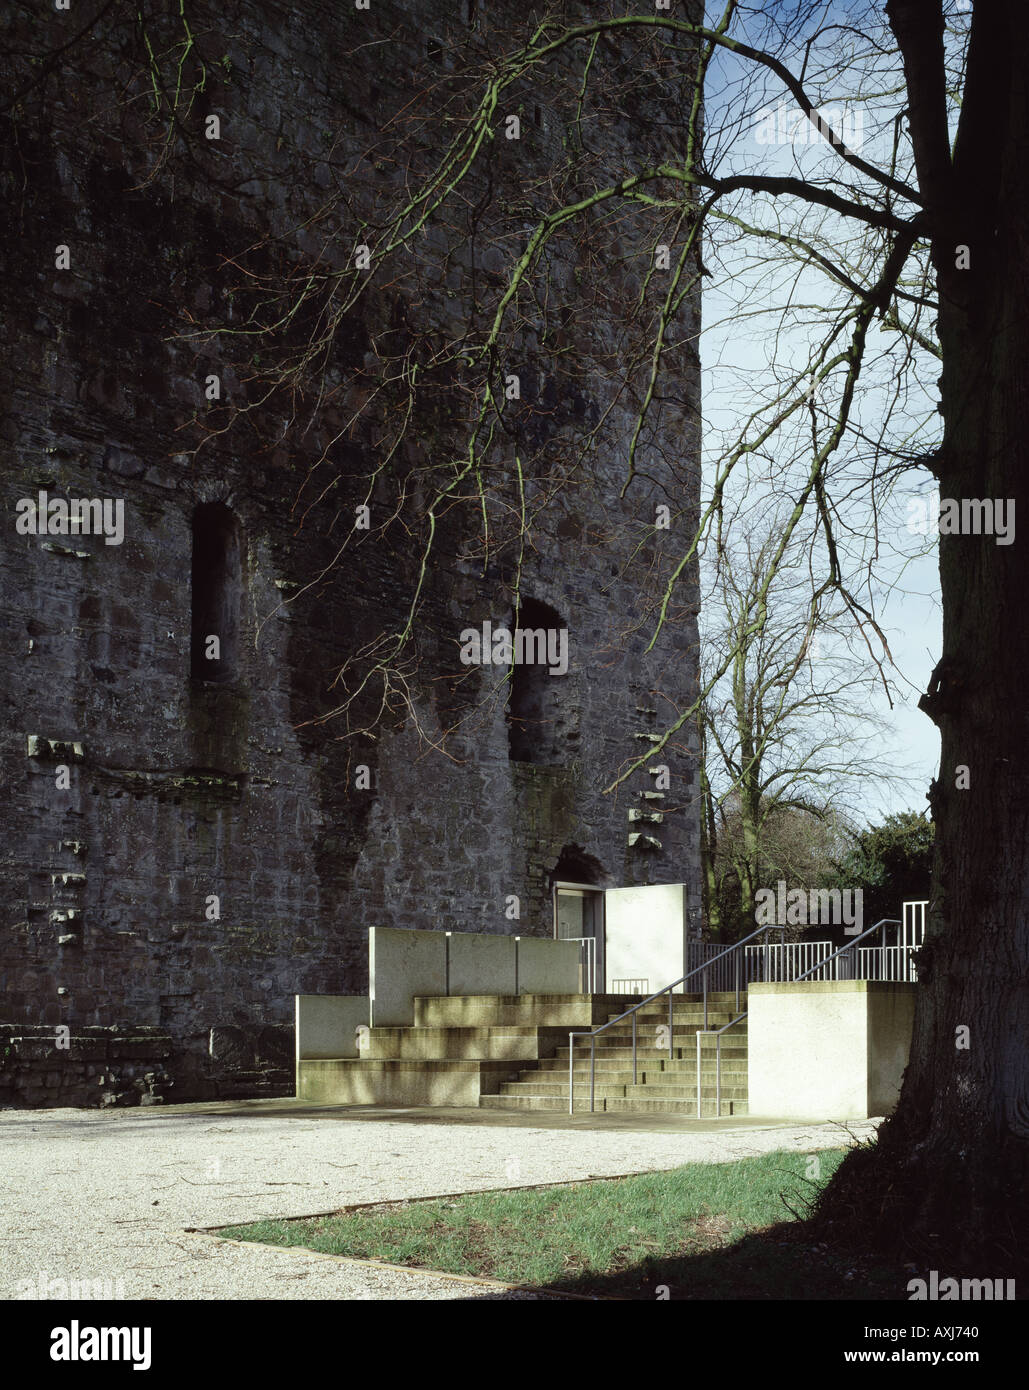 MAYNOOTH CASTLE EXHIBITION SPACE - Stock Image